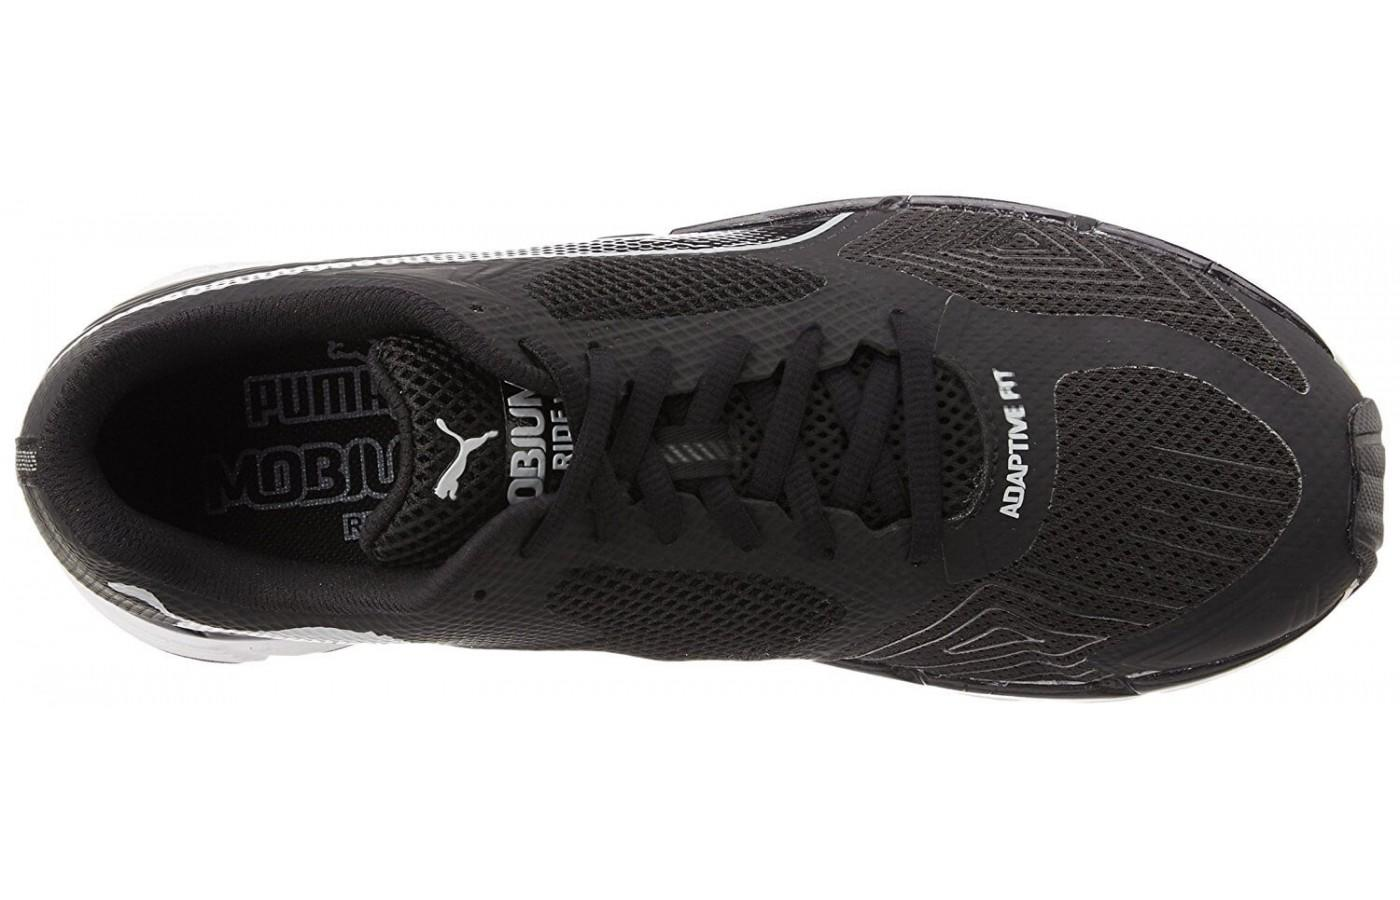 the Puma Mobium Ride v2 has a highly breathable dual-layer upper mesh